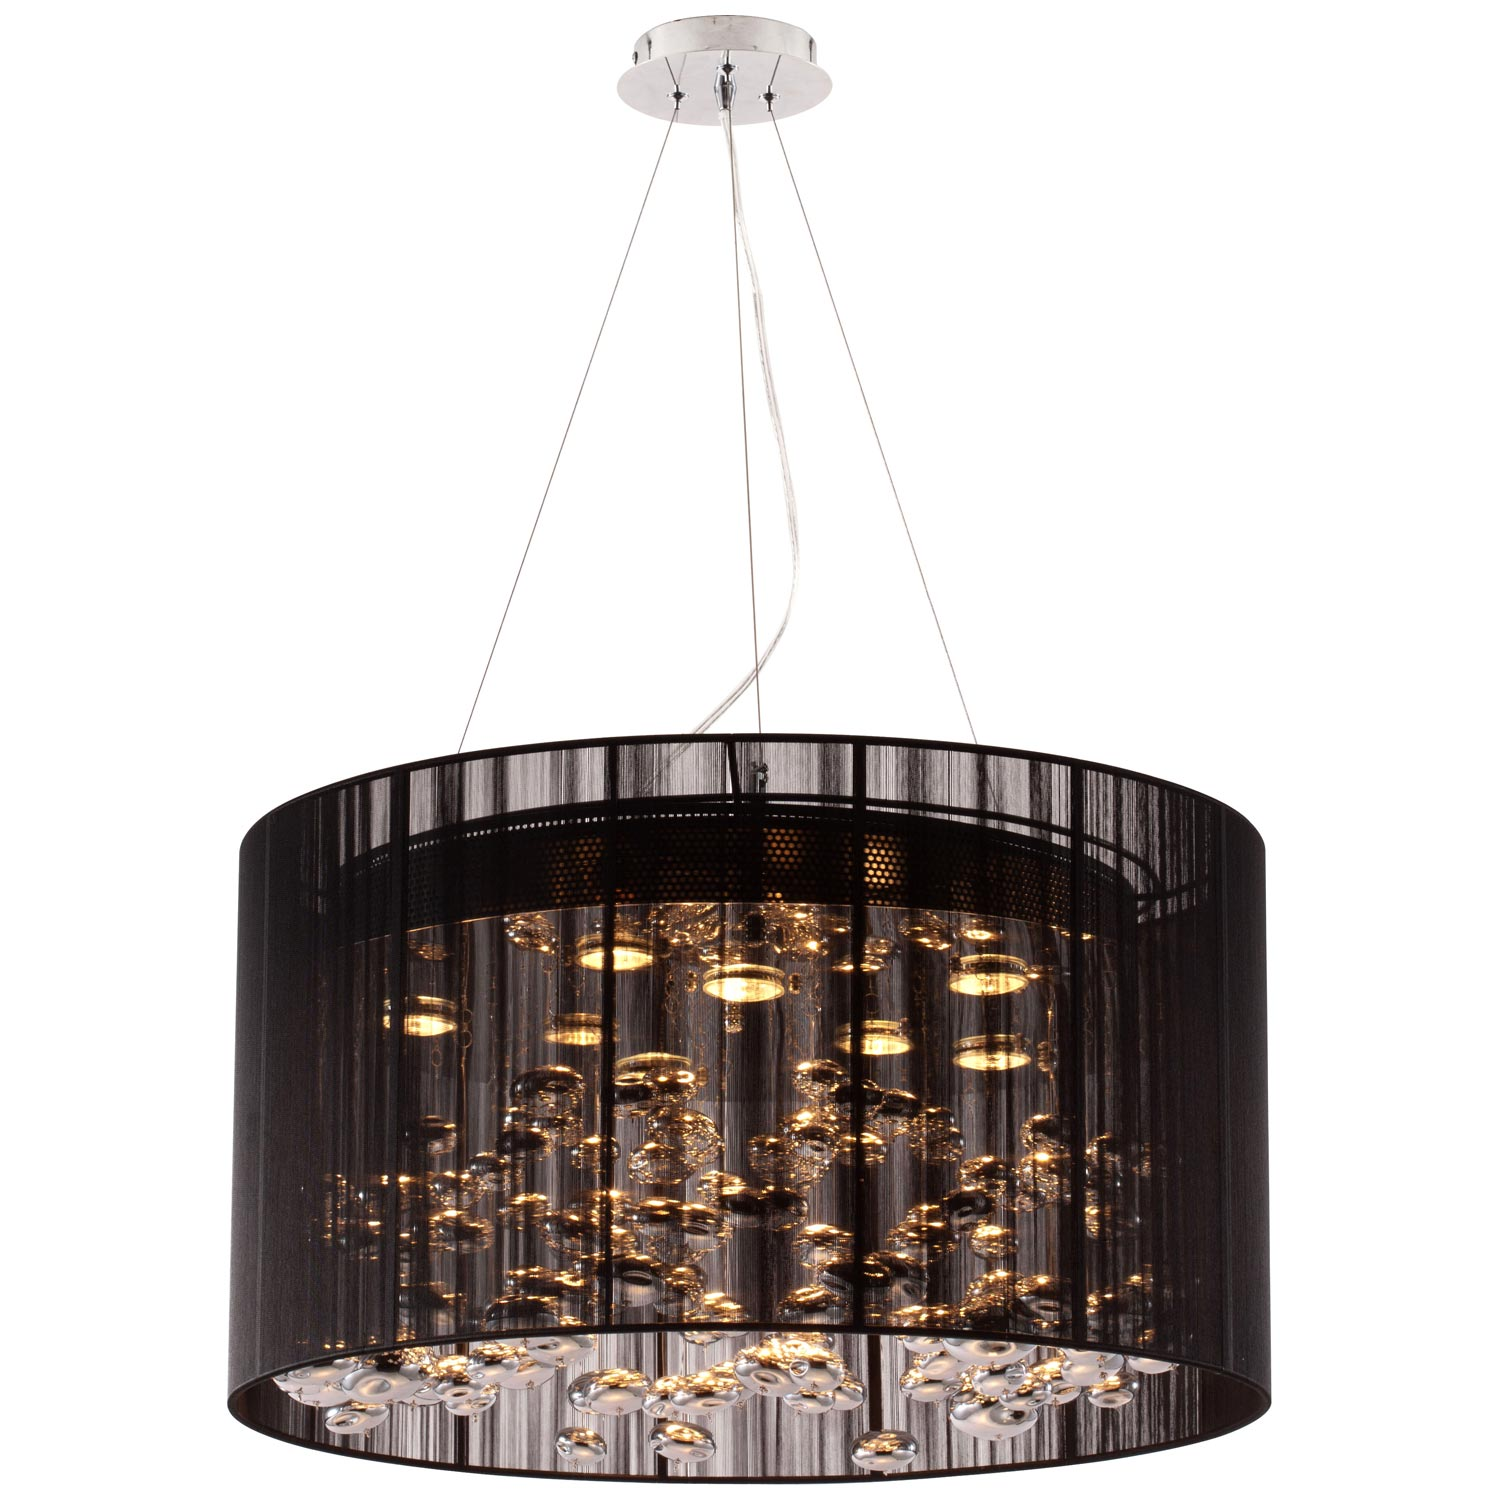 Symmetry Ceiling Lamp - Lace Fabric Shade, Black - ZM-50085